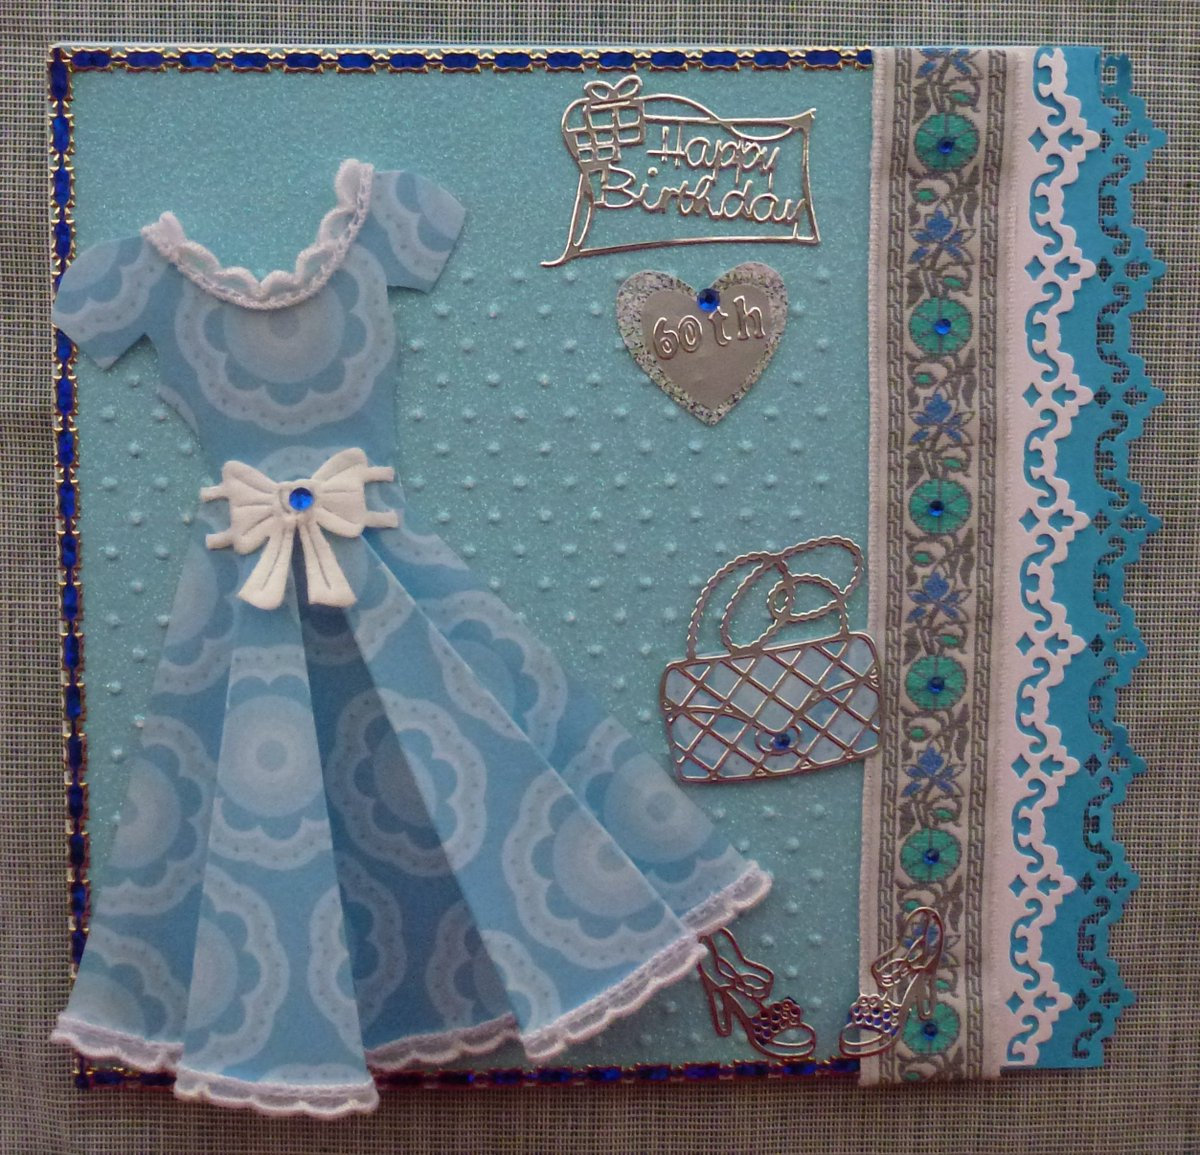 Sabina Caruso On Twitter New Design Of 60th Birthday Card Handmade For A Friend Hand Cut The Paper Embossed Punched Out Side Panel